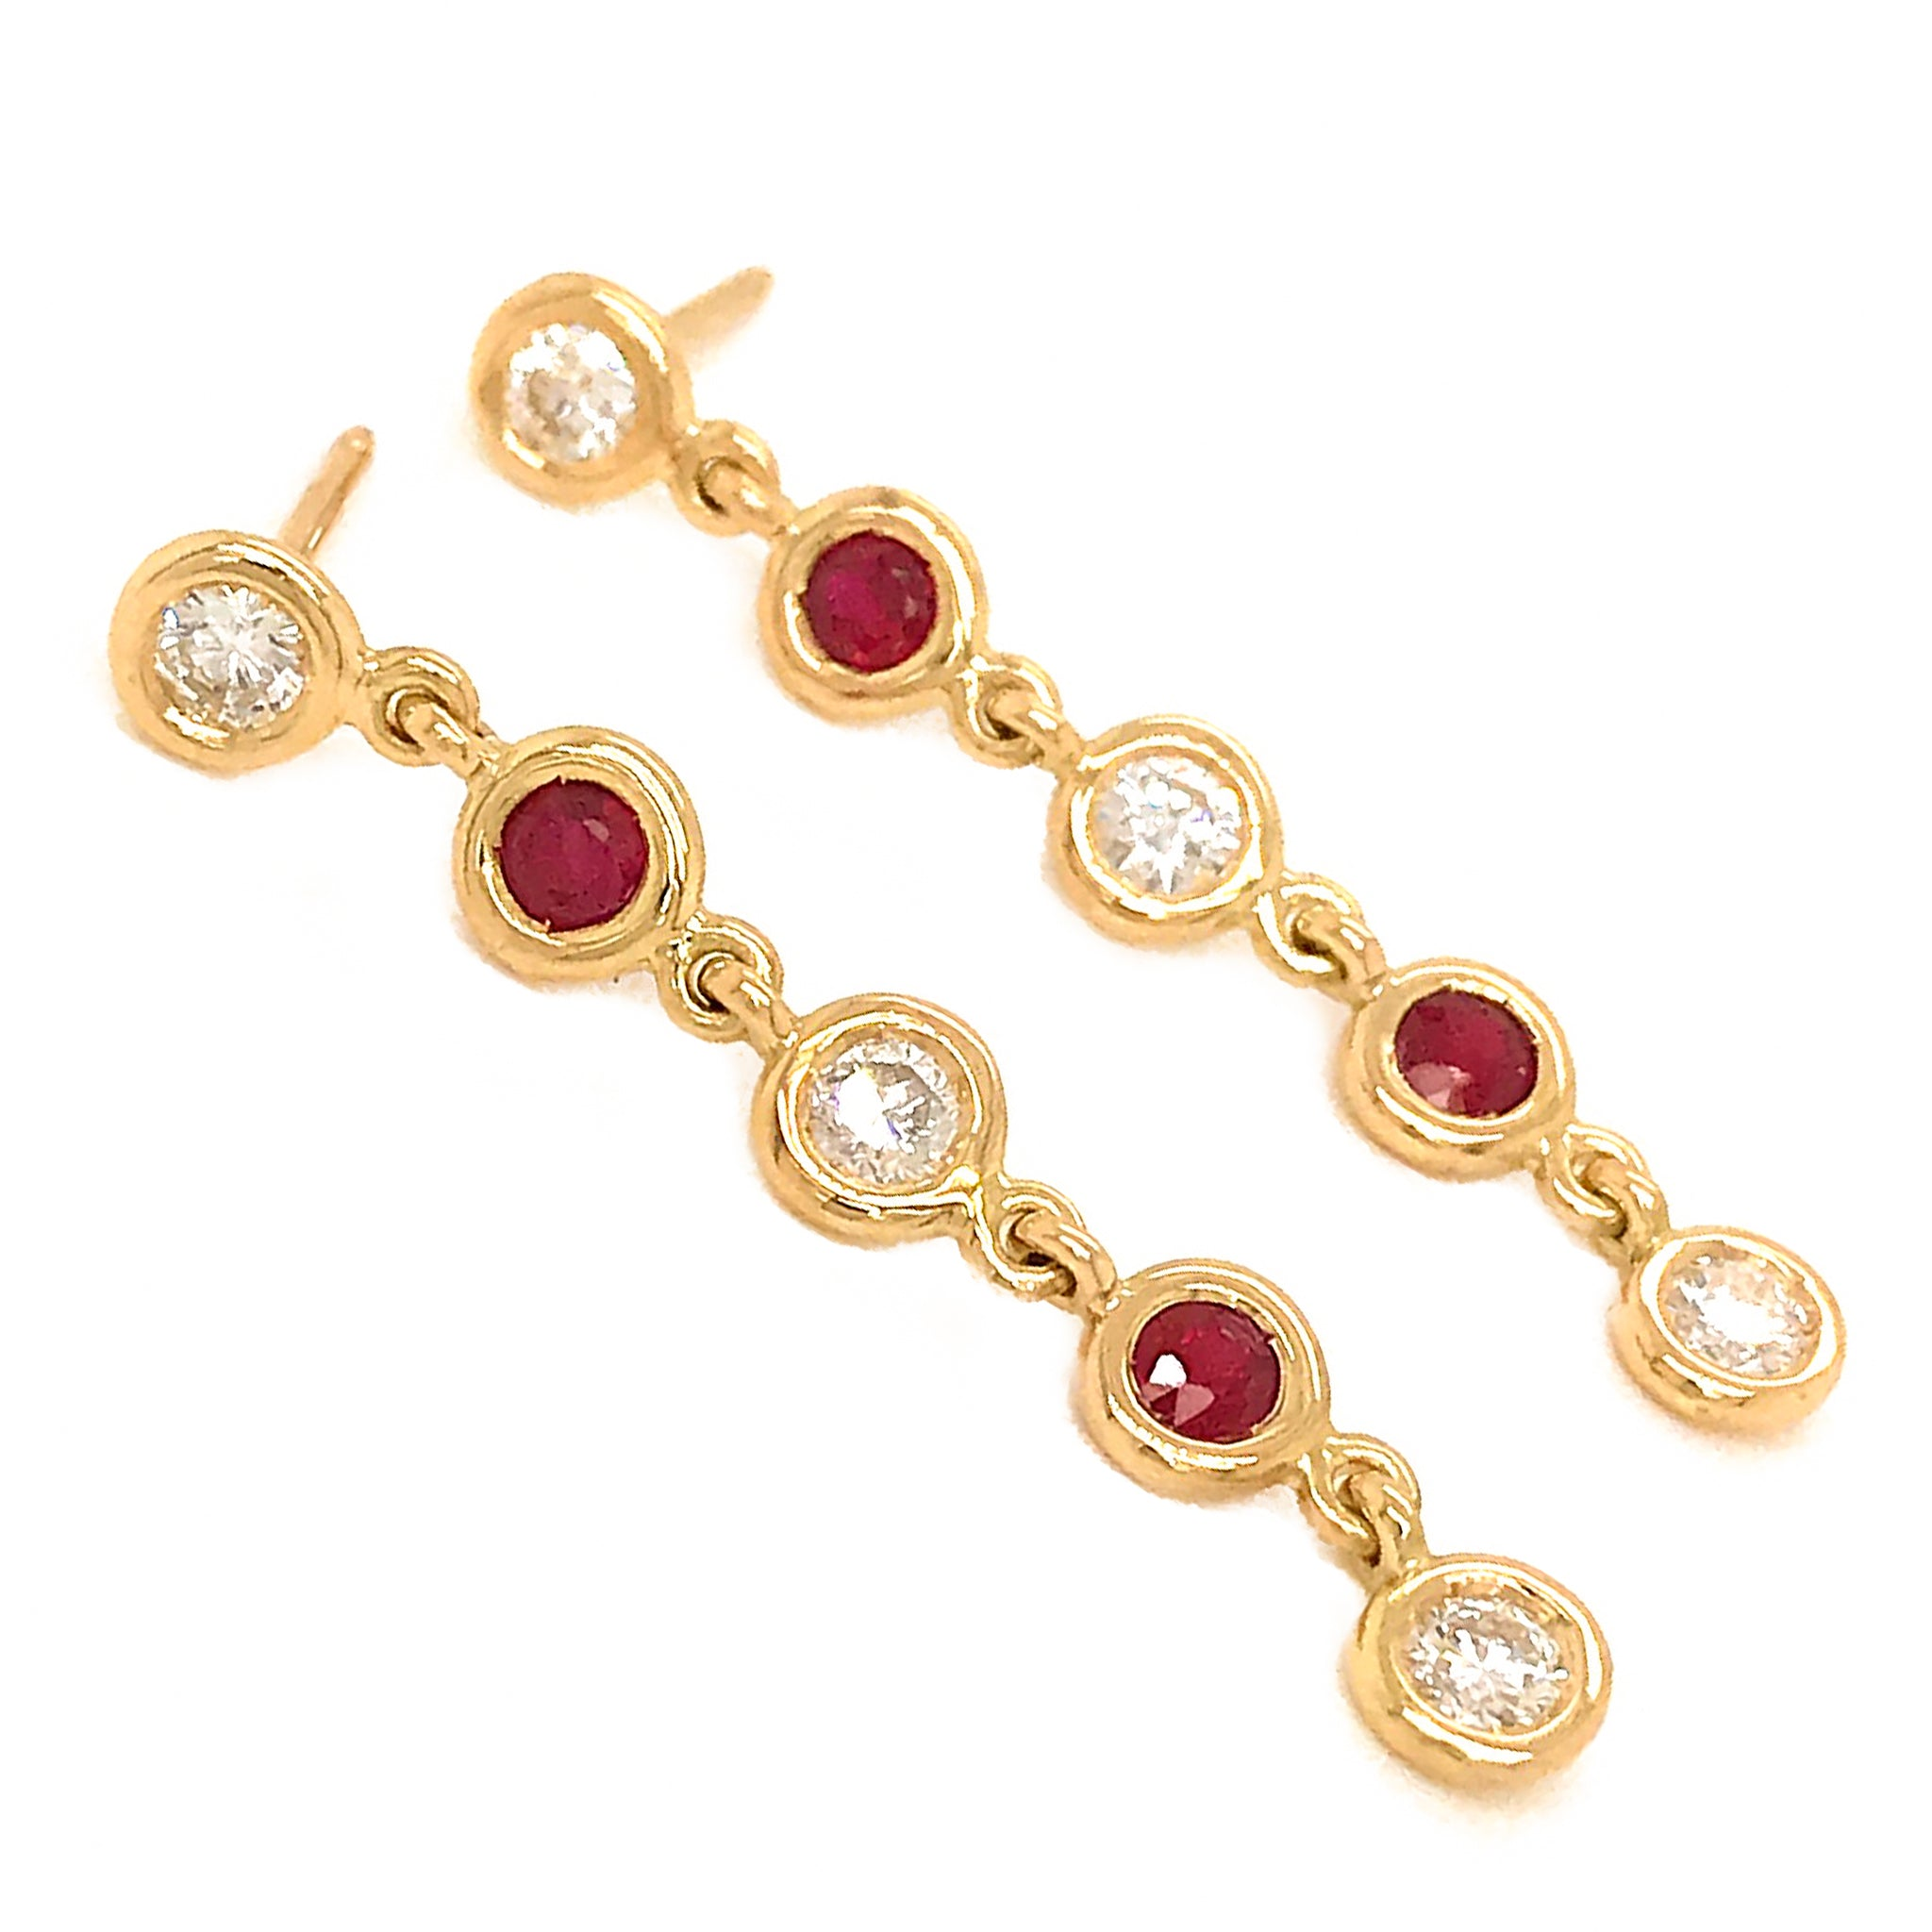 FAB DROPS 18K Yellow Gold Ruby and Diamond Drop Earrings